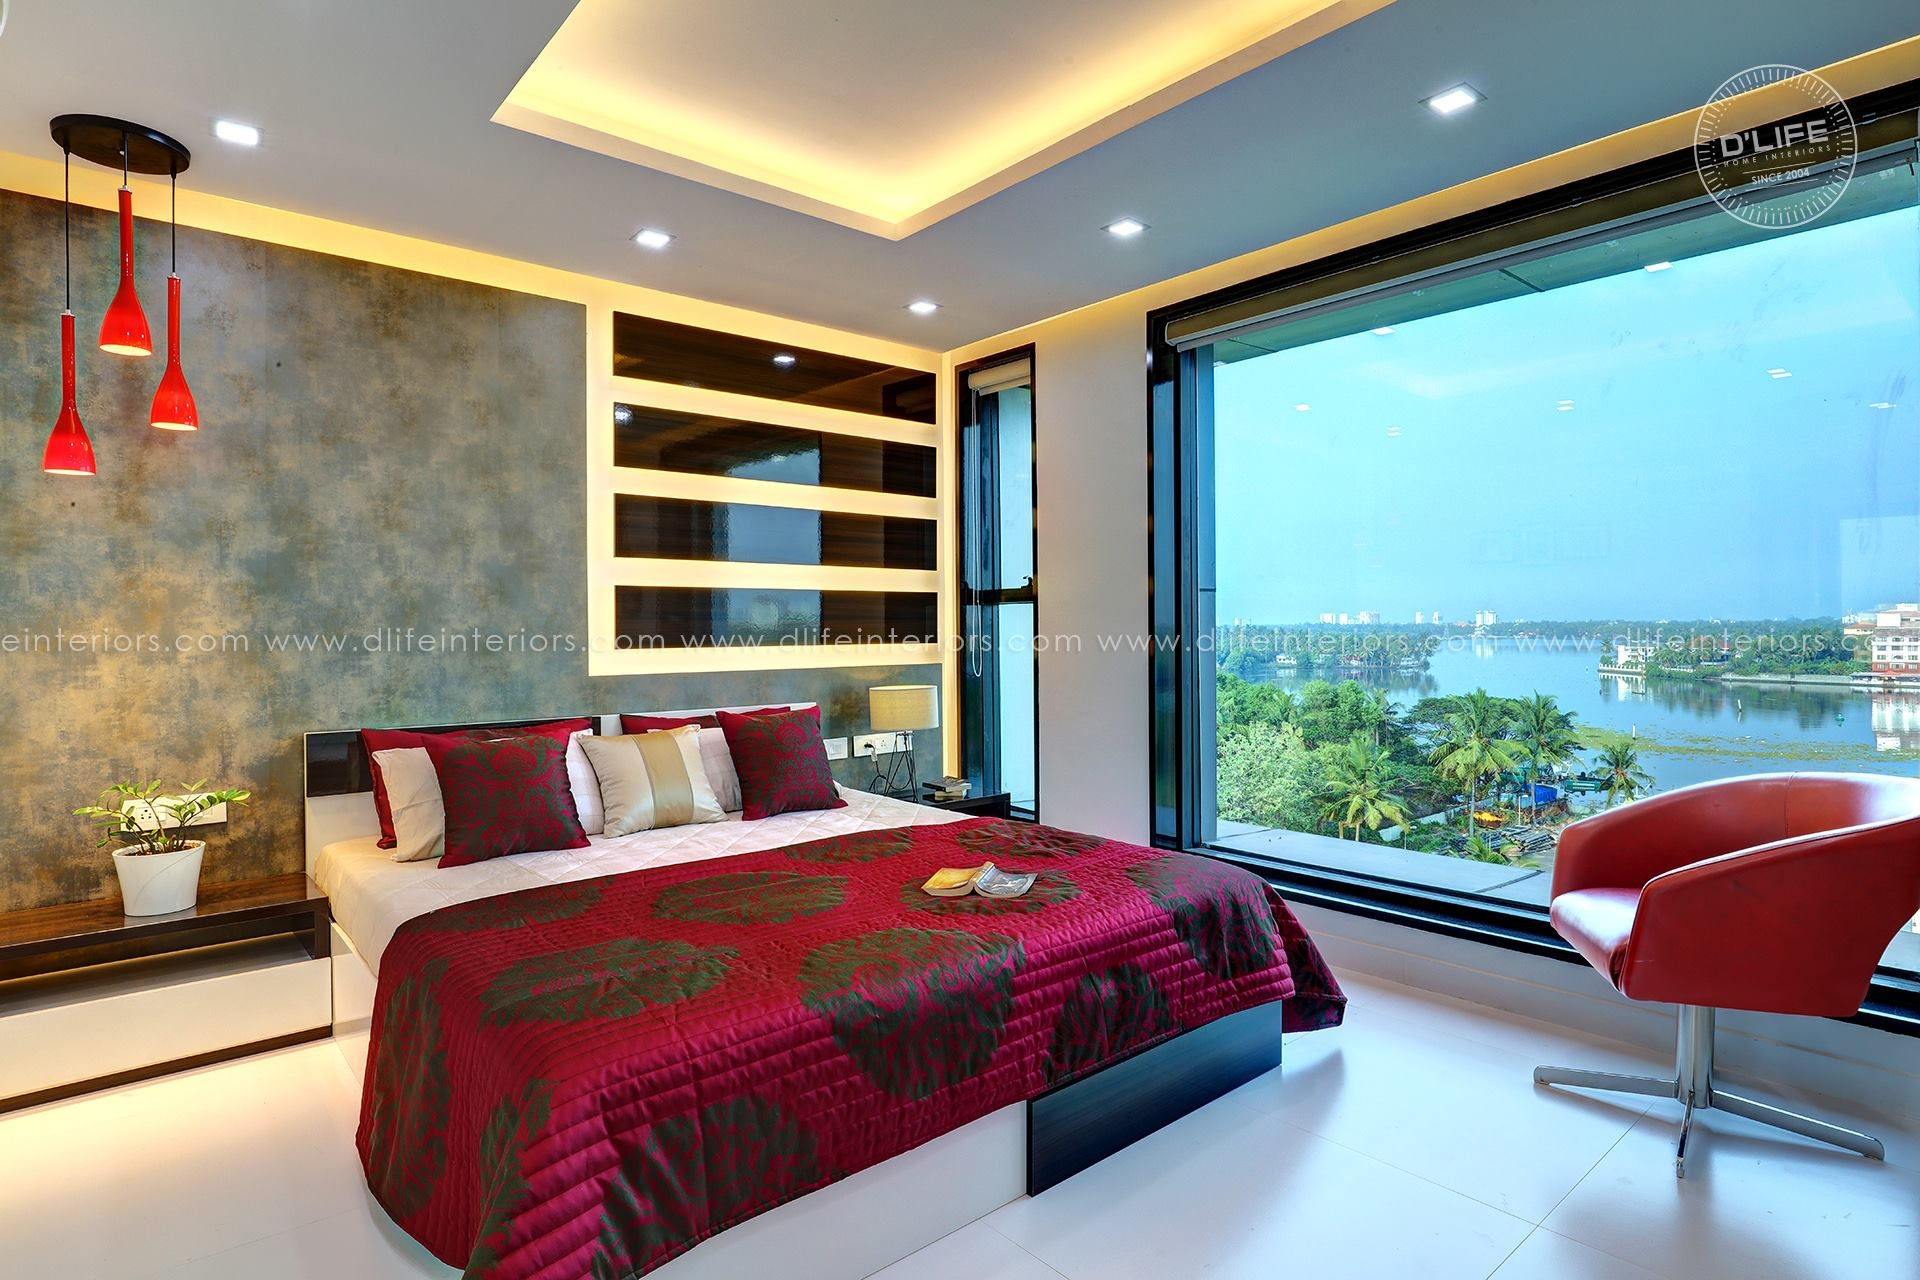 Be It A Modular Kitchen Or Complete Home Interior Furnishing The Company  Offers Custom Made Designs And Products For Each Customer.